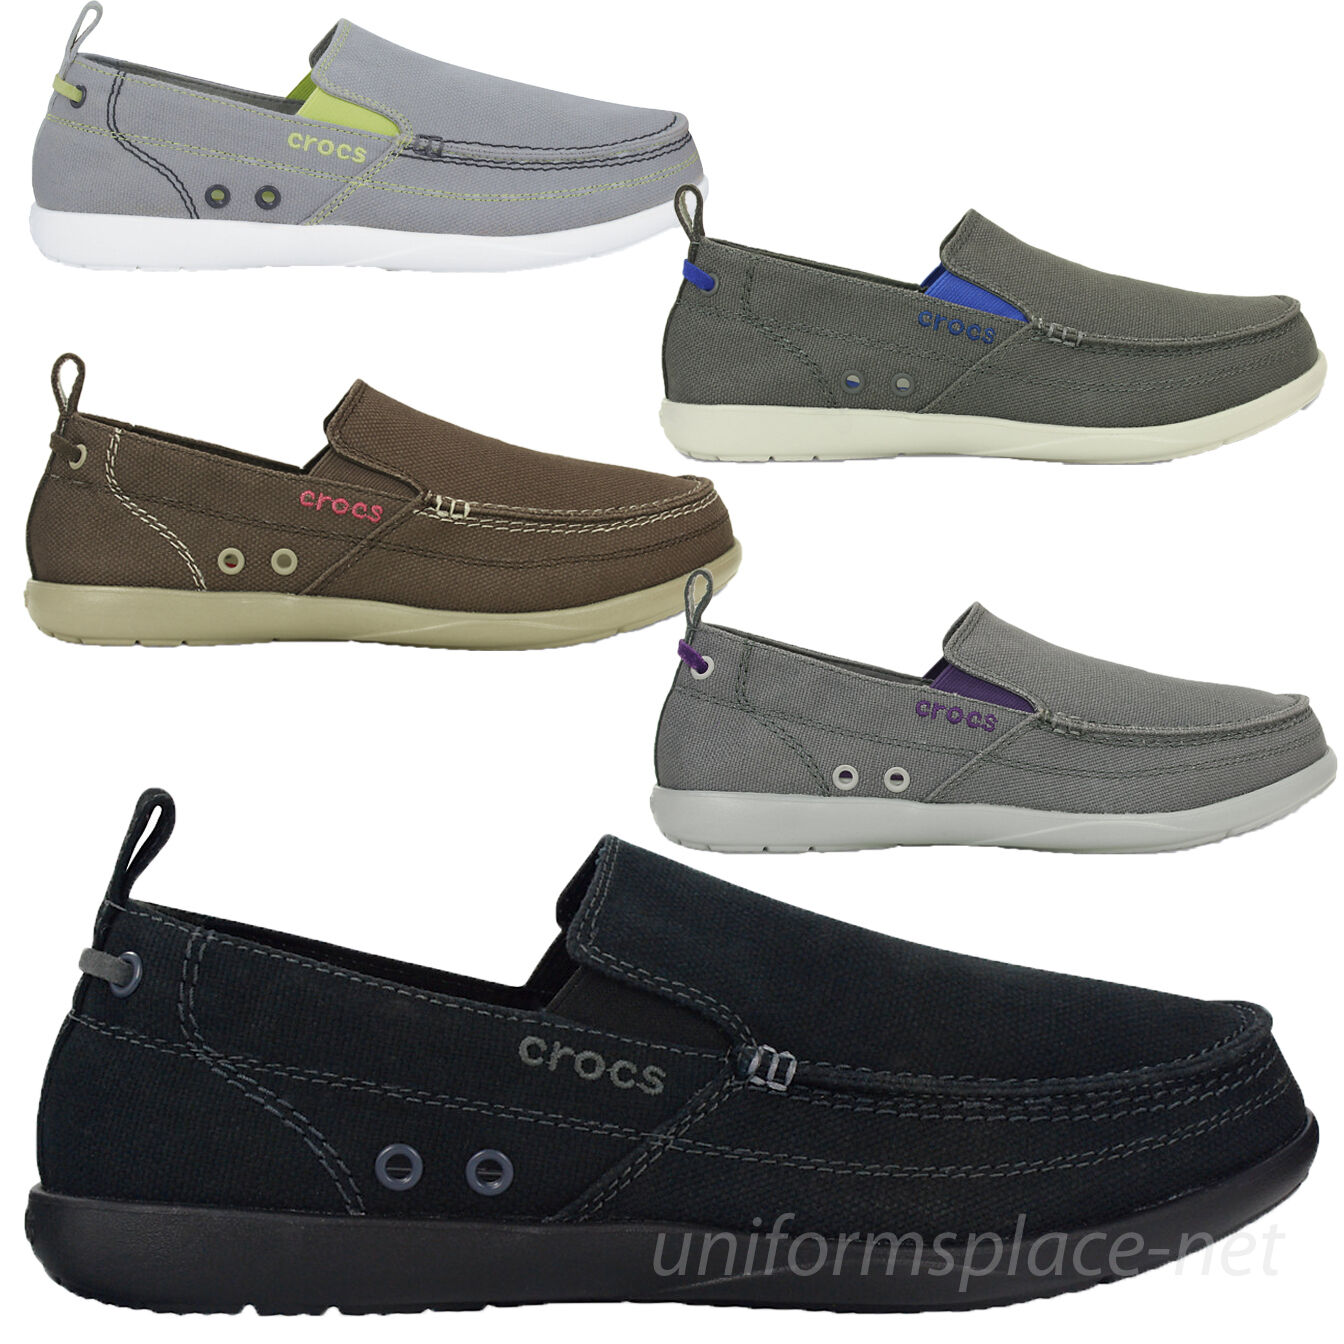 Crocs shoes Men's Loafer Slip on shoes Walu 11270 Canvas colors upper Size 7-13